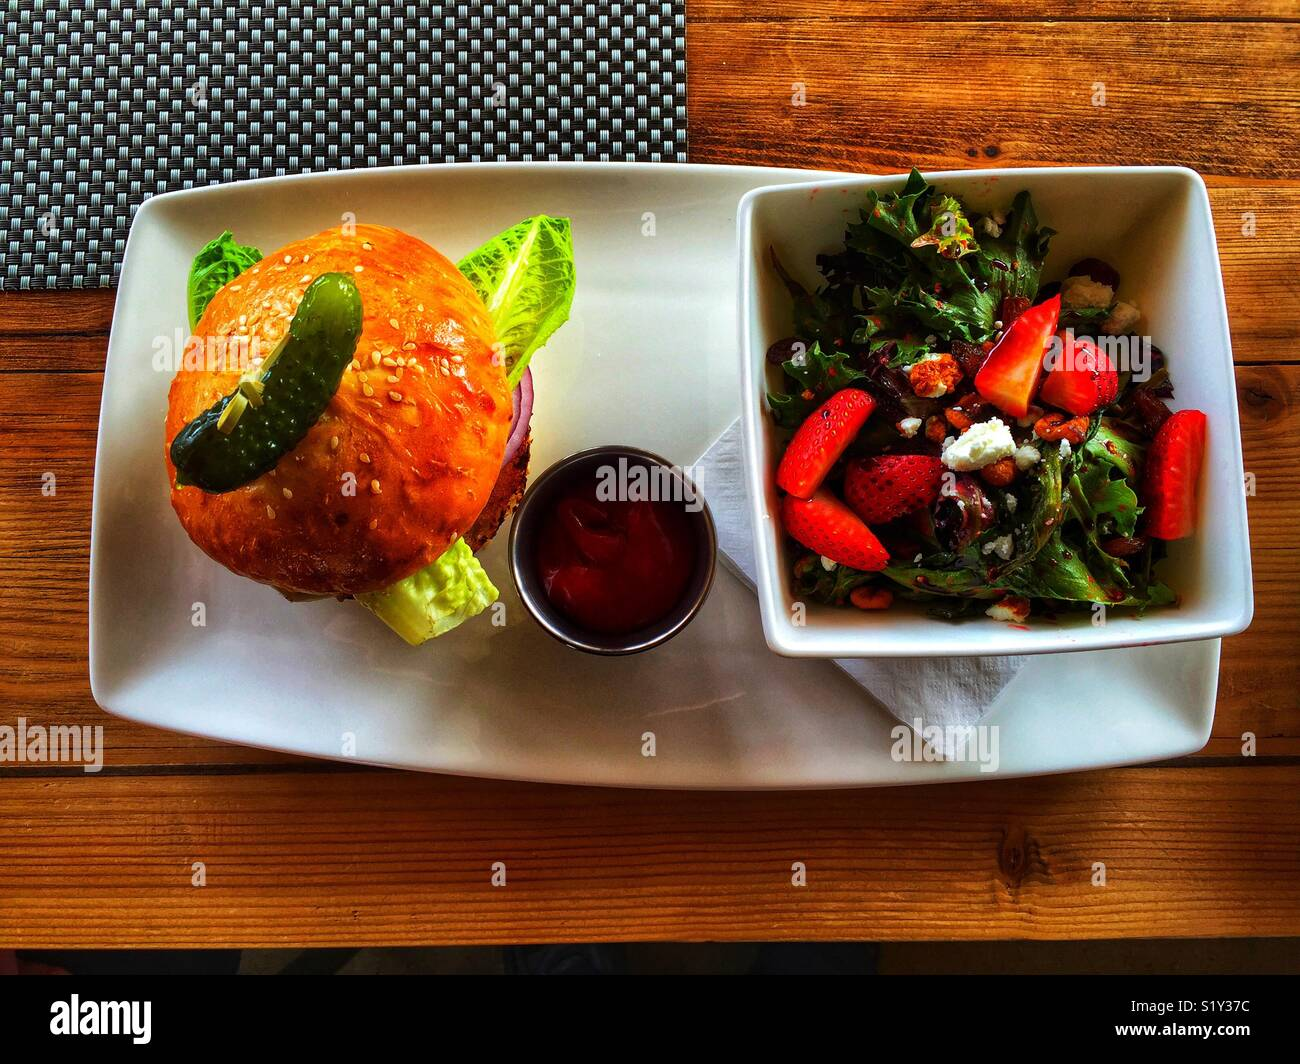 Burger de bison et salade Photo Stock